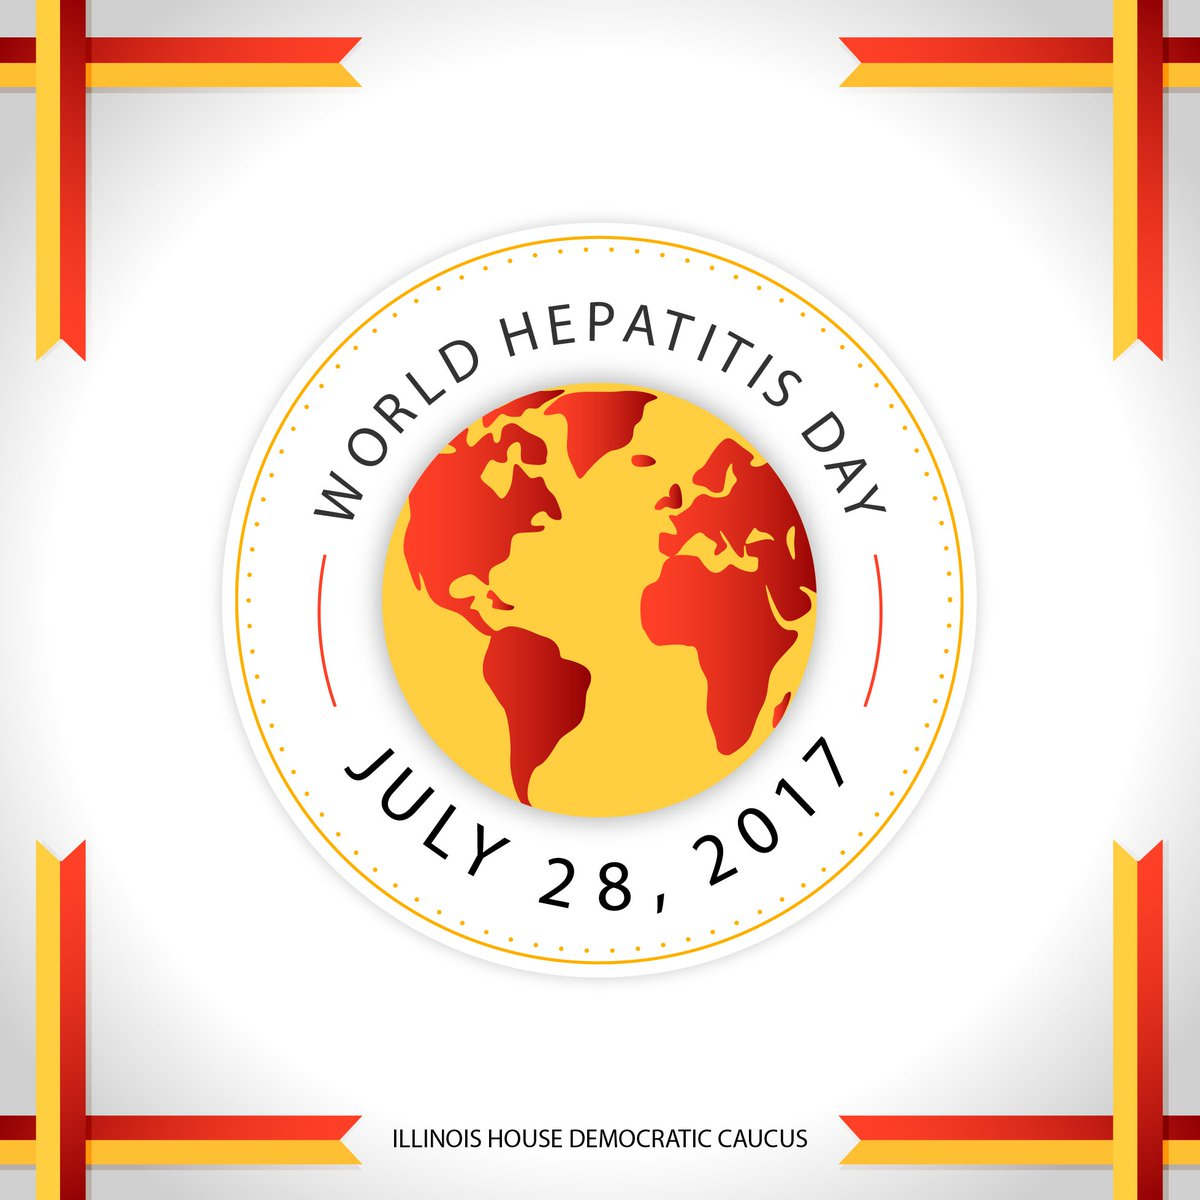 test Twitter Media - Over 4 million Americans are living w/ chronic hepatitis, but many don't know. RT to help raise awareness. #WorldHepatitisDay https://t.co/gabaLaFKQS